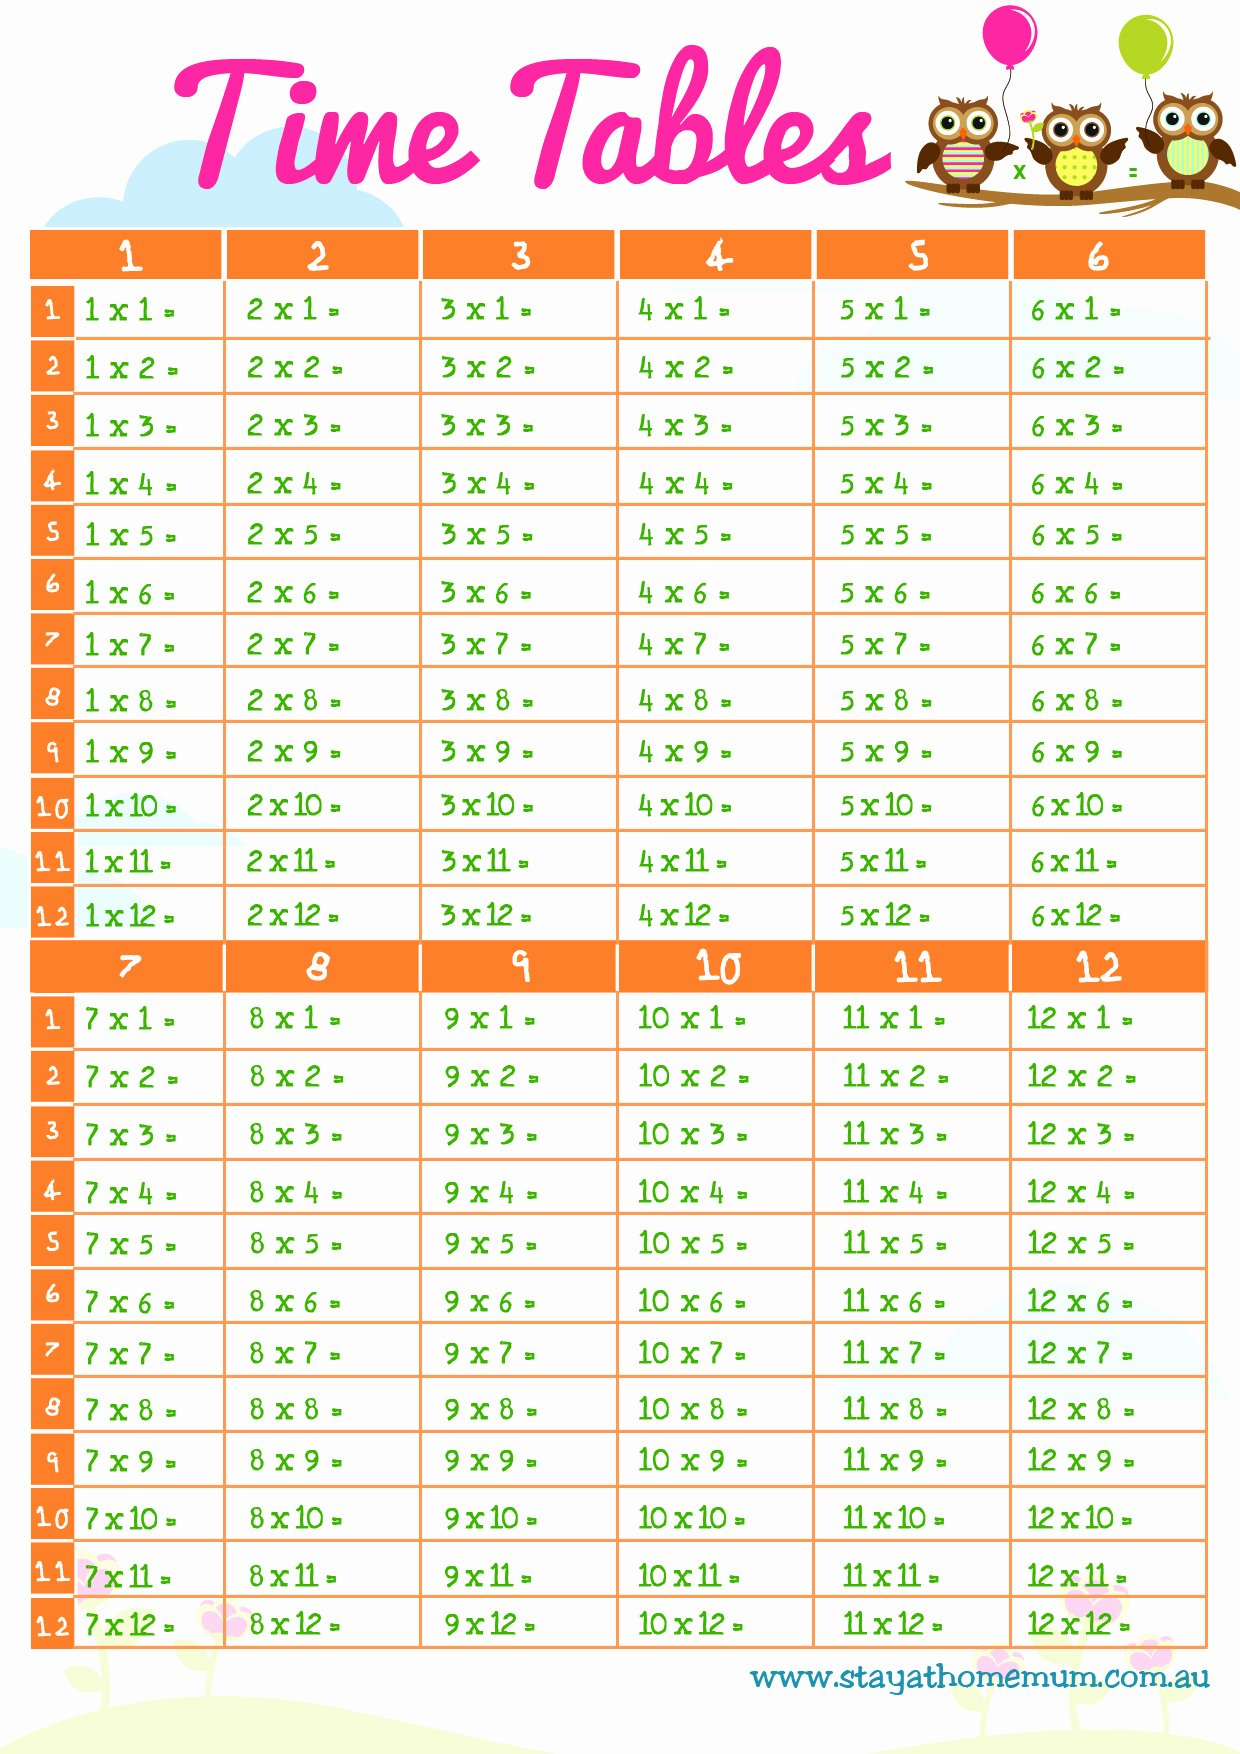 Free Printable Times Tables Beautiful Times Tables Free Printable Stay at Home Mum